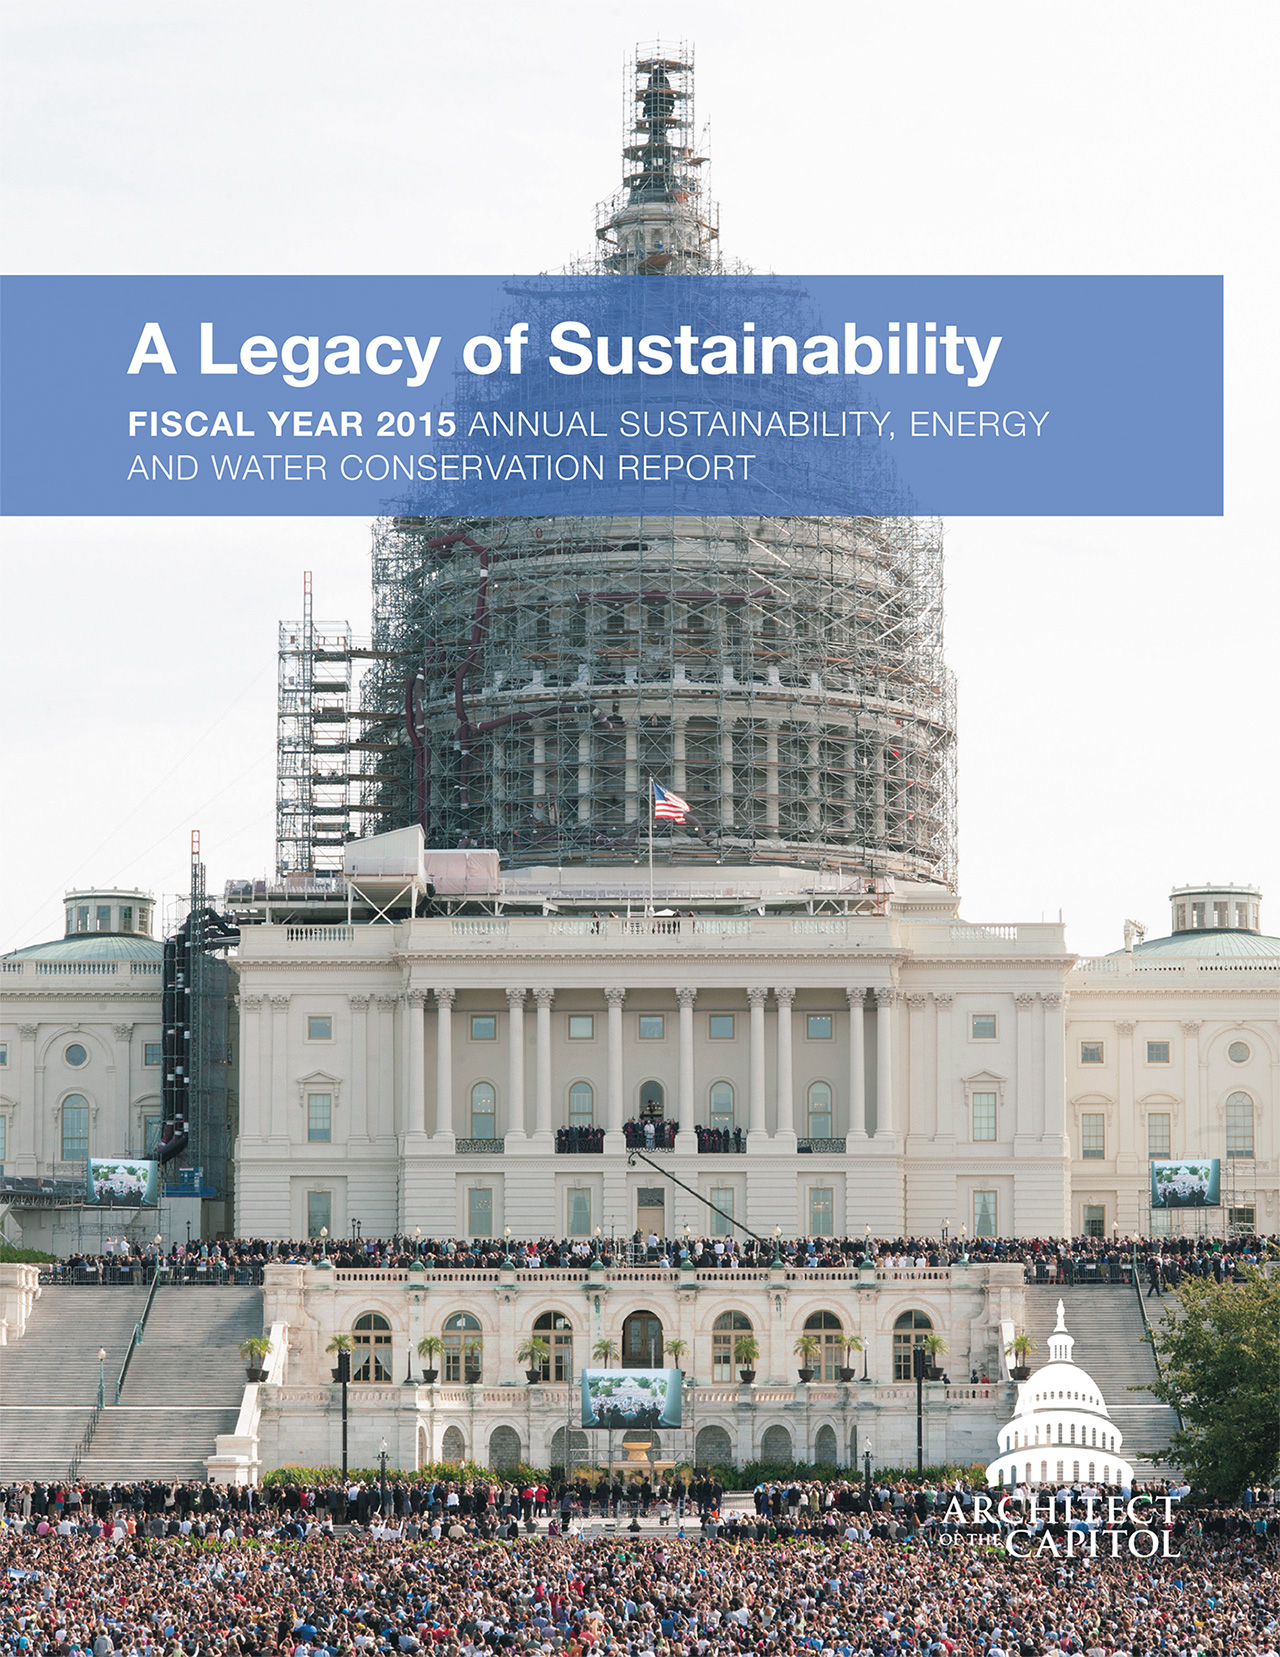 Cover of the AOC's Fiscal Year 15 Annual Sustainability, Energy and Water Conservation Report.